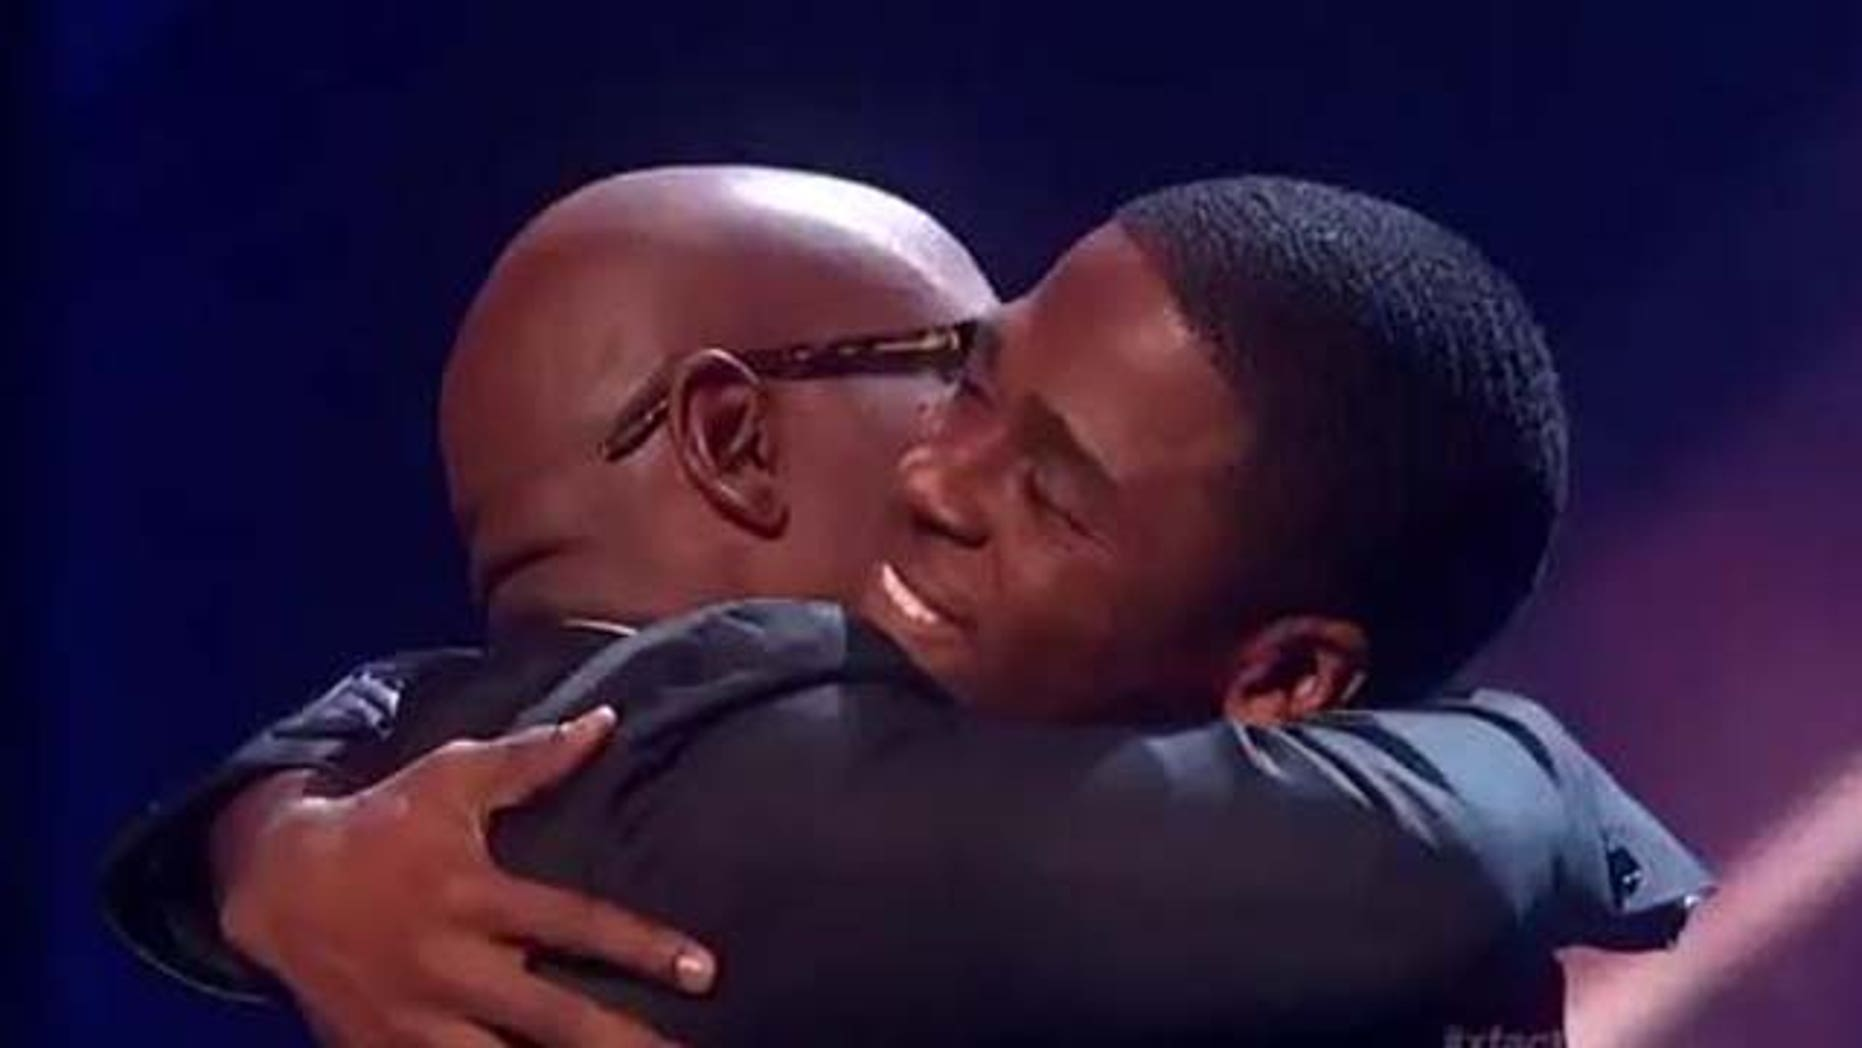 Dec. 15, 2011: Maryland native Marcus Canty is eliminated Thursday night on the X Factor.